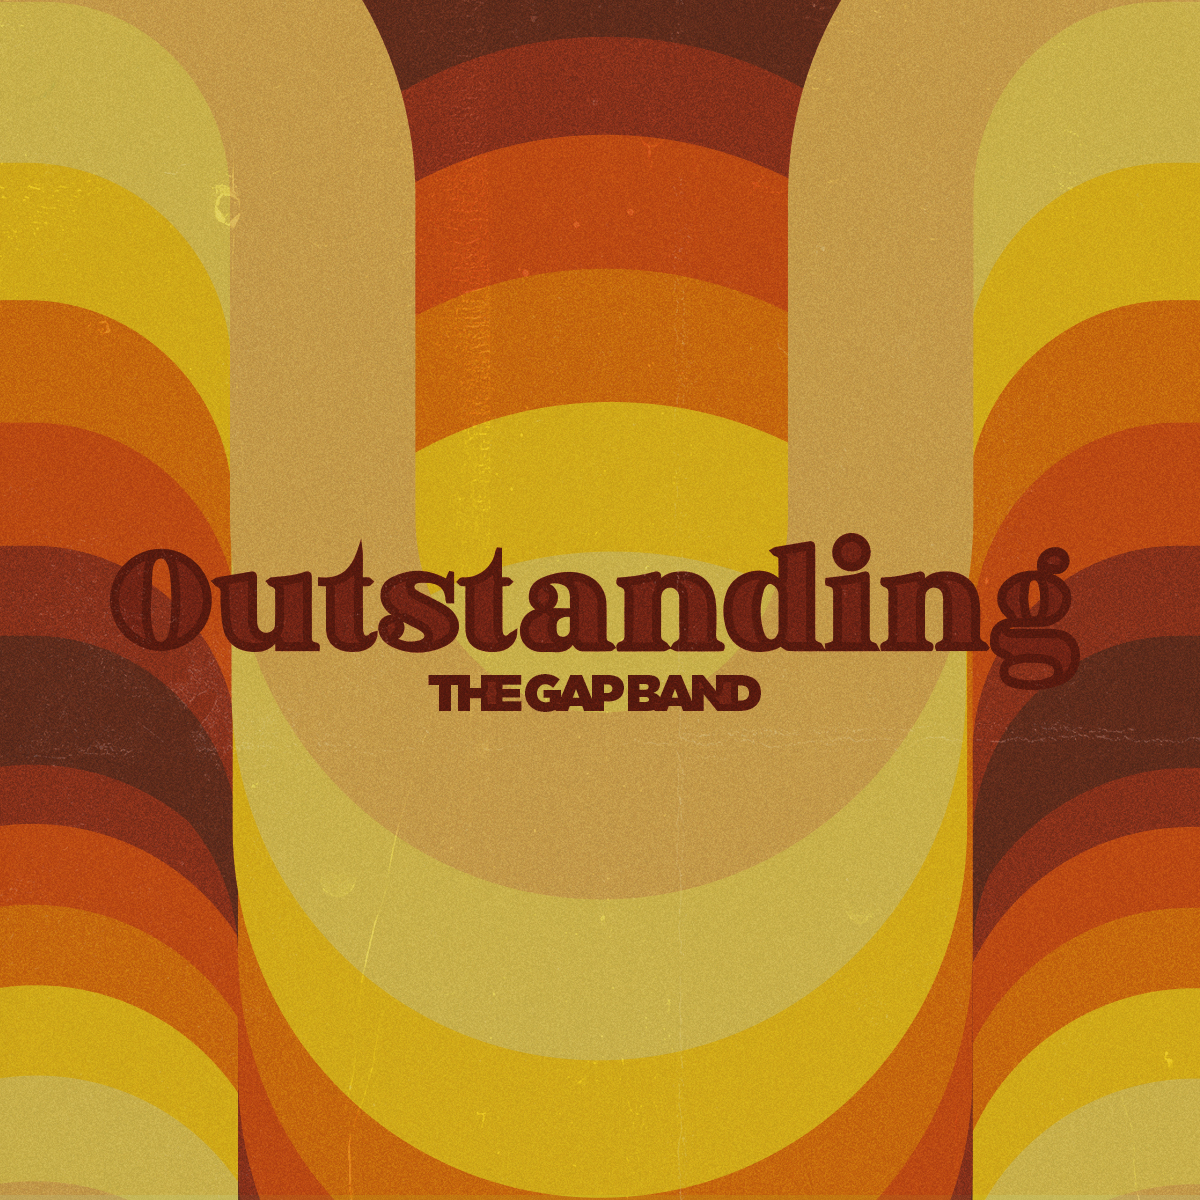 Outstanding | The Gap Band